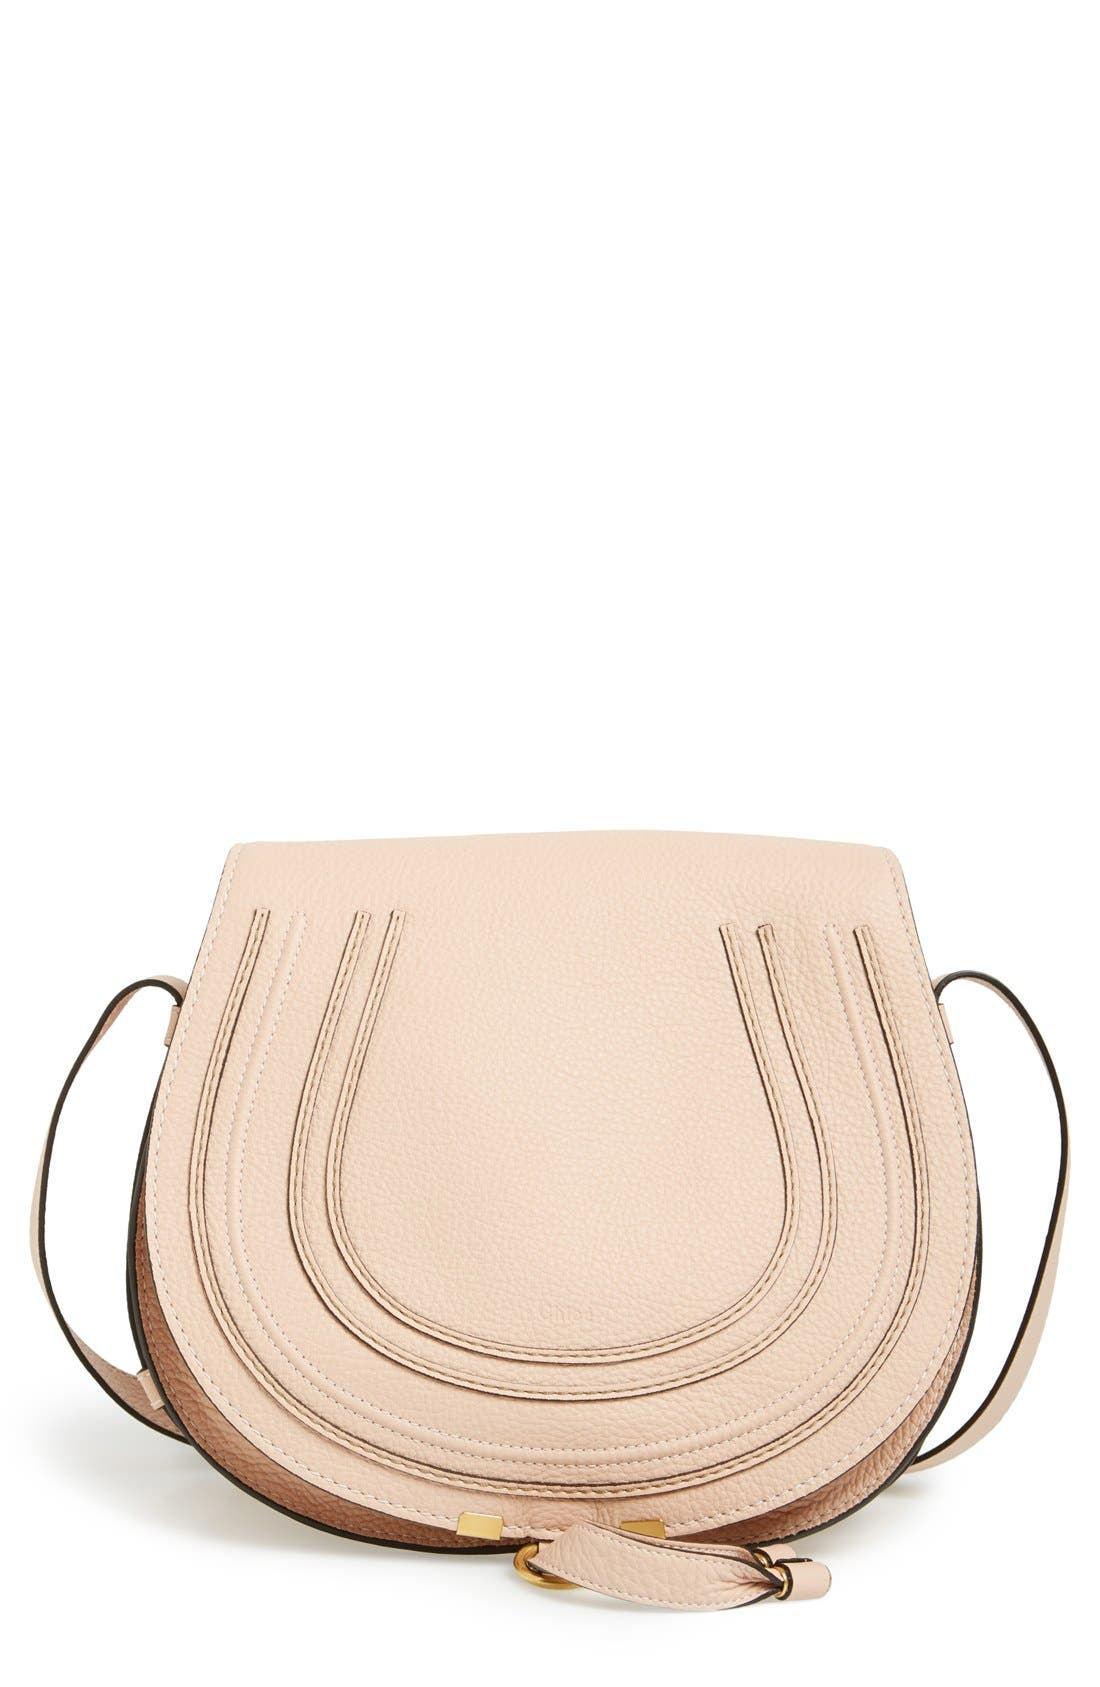 Main Image - Chloé 'Marcie - Medium' Leather Crossbody Bag